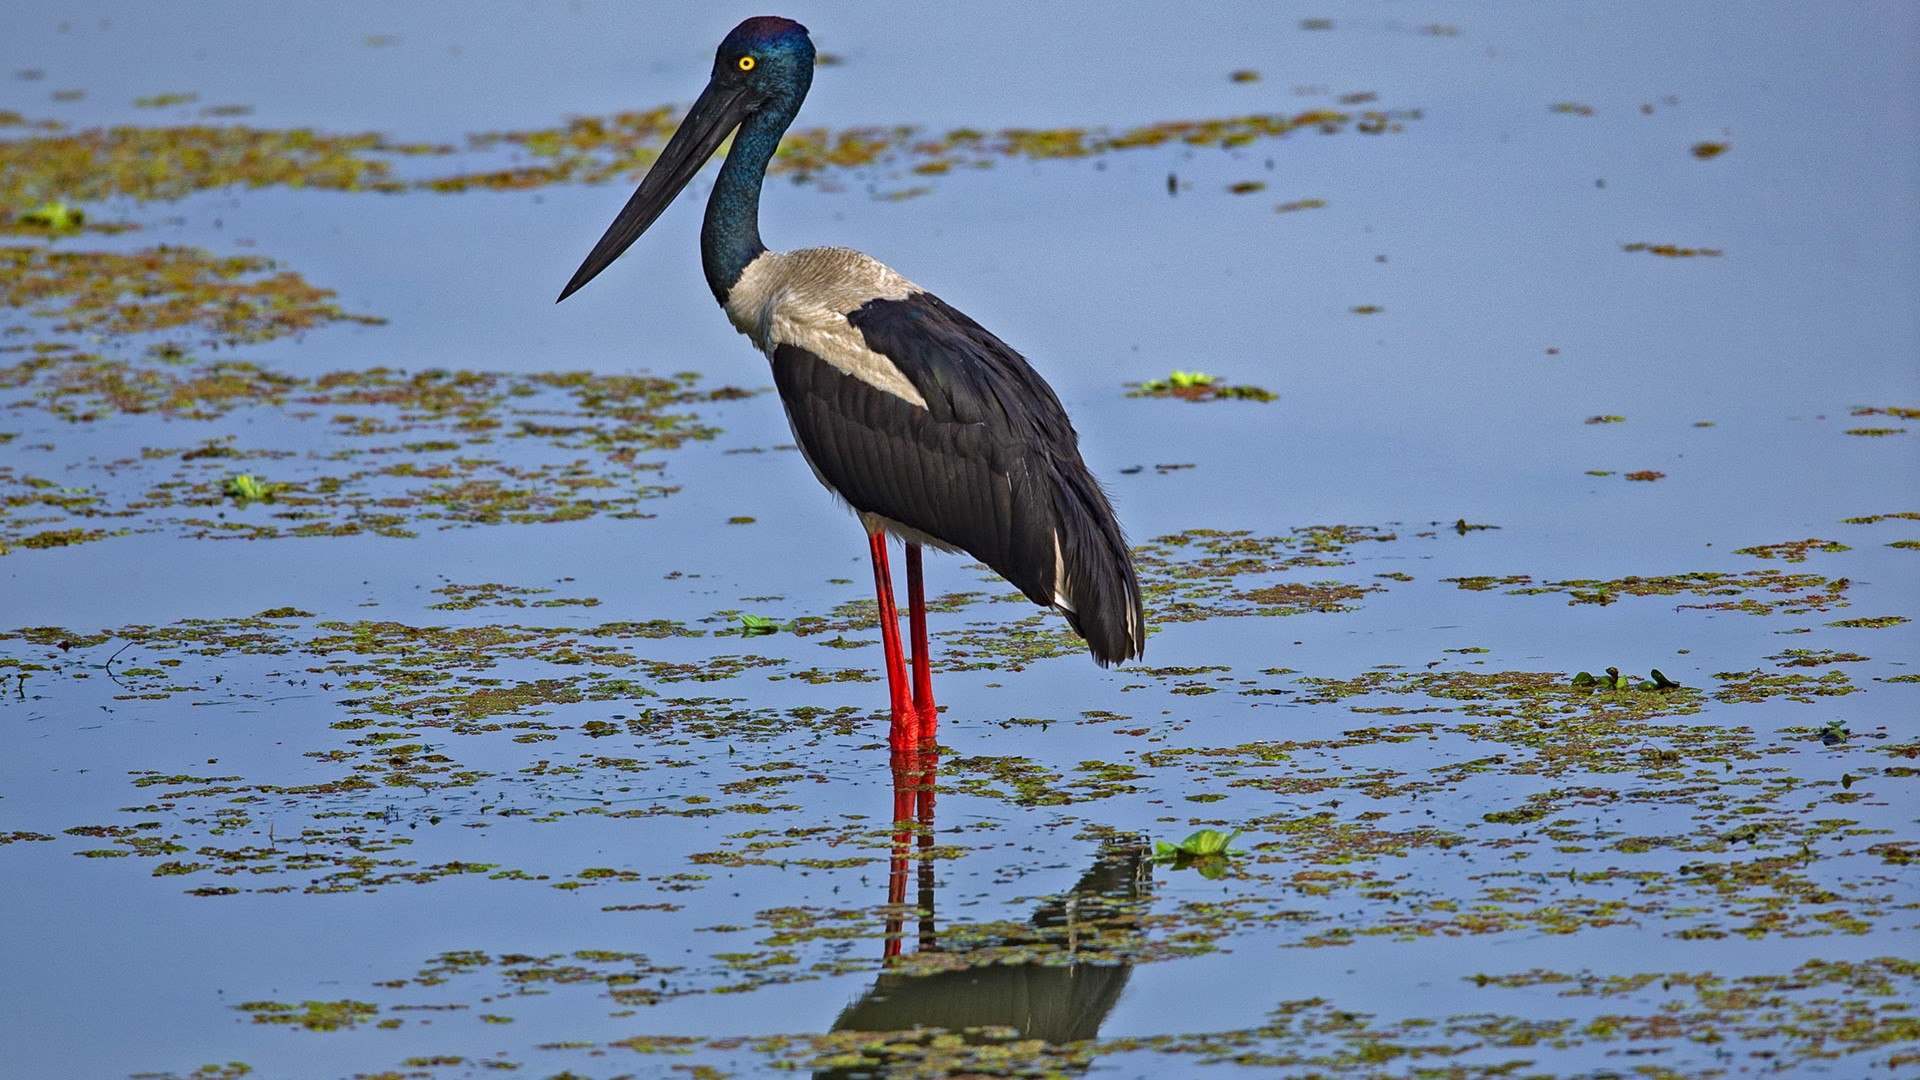 Black-necked Stork in the Eye of the Marsh